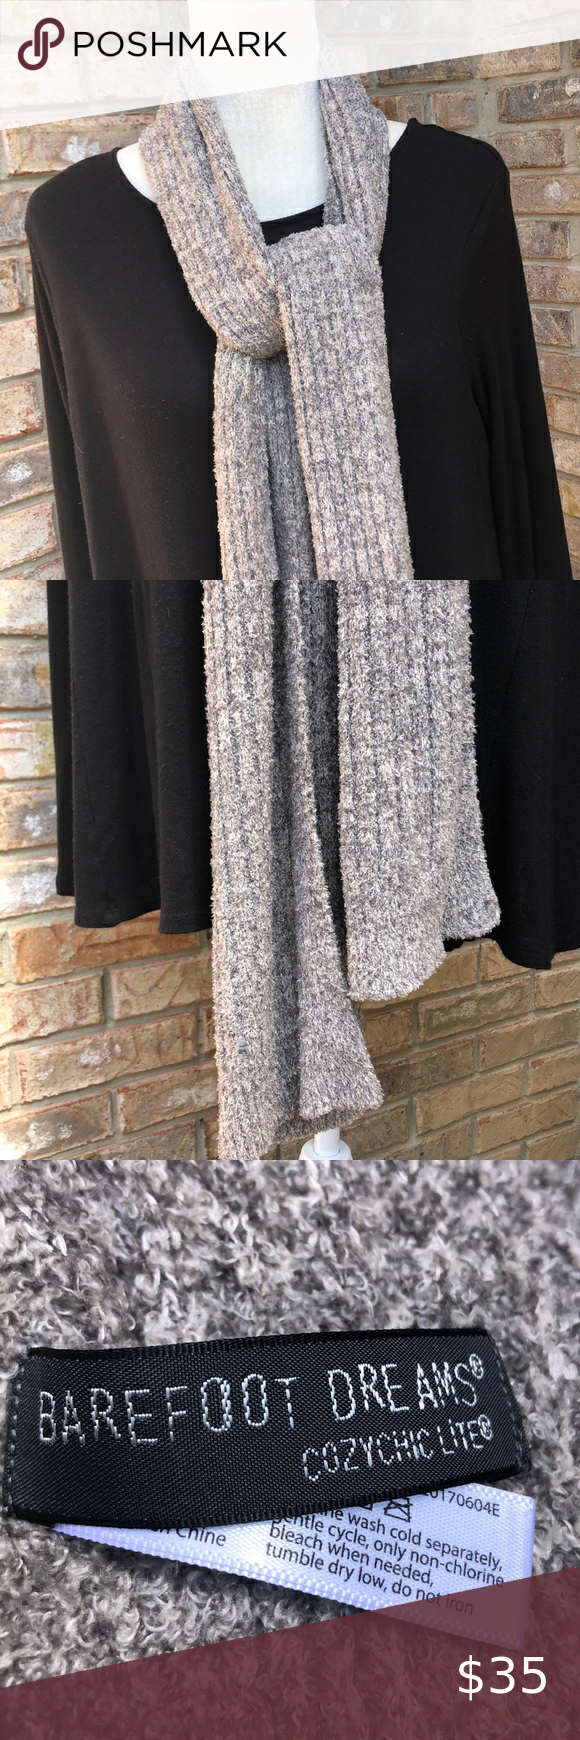 Barefoot Dreams cozy chic life gray scarf, EUC Mixture of gray-khaki-ivory  Super soft  Offers are welcome. Bundle this item with others in my closet for the best deal. Bundling saves you shipping costs. All items from a smoke-free, dog-friendly home. Thank you for shopping in my Posh closet!💕 Barefoot Dreams Accessories Scarves & Wraps